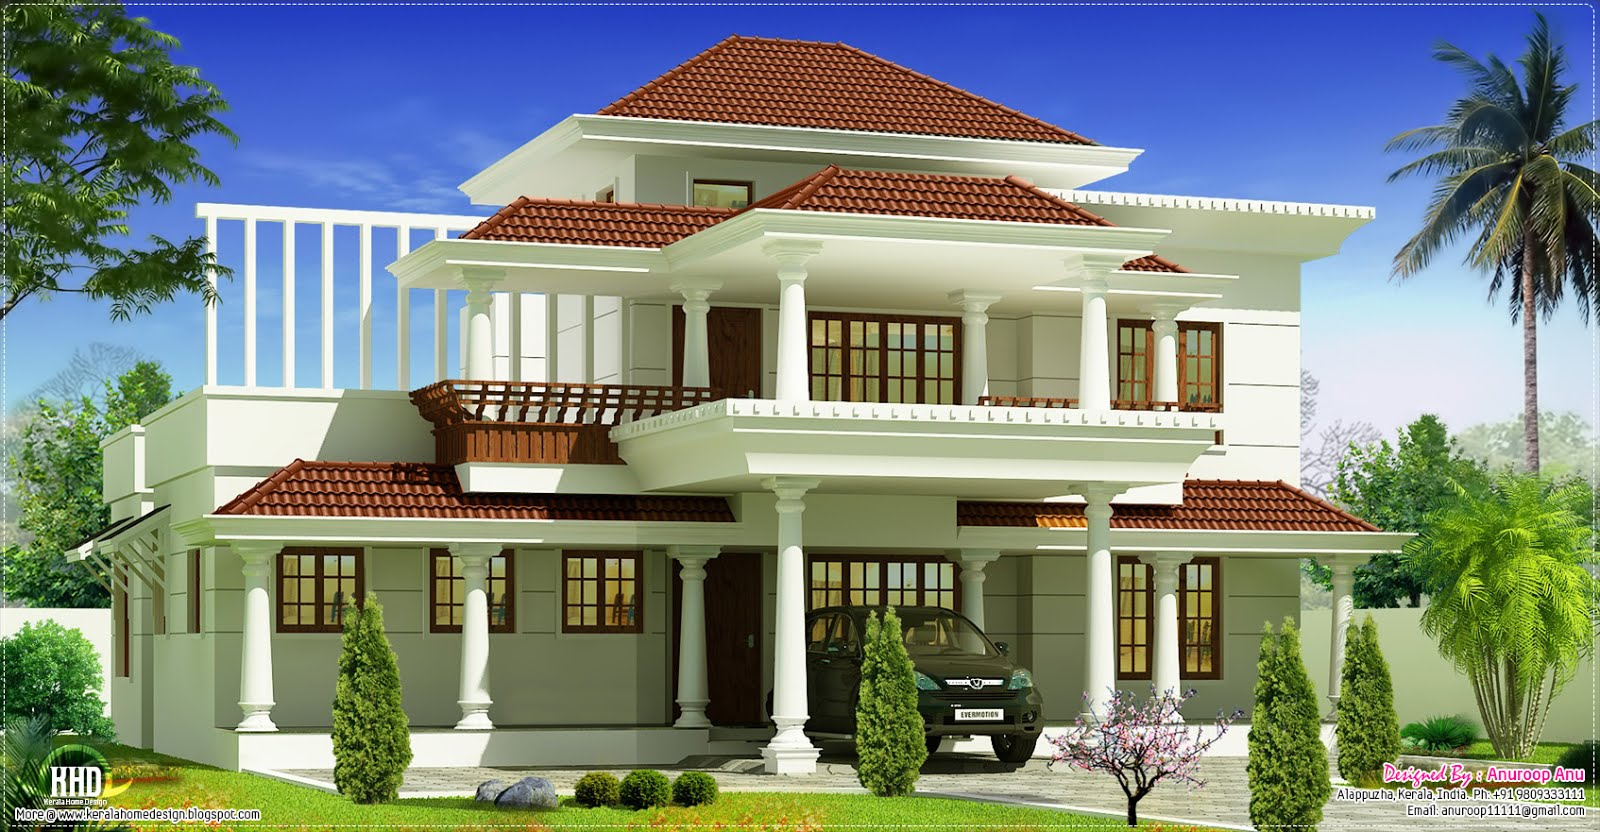 January 2013 kerala home design and floor plans Good house designs in india